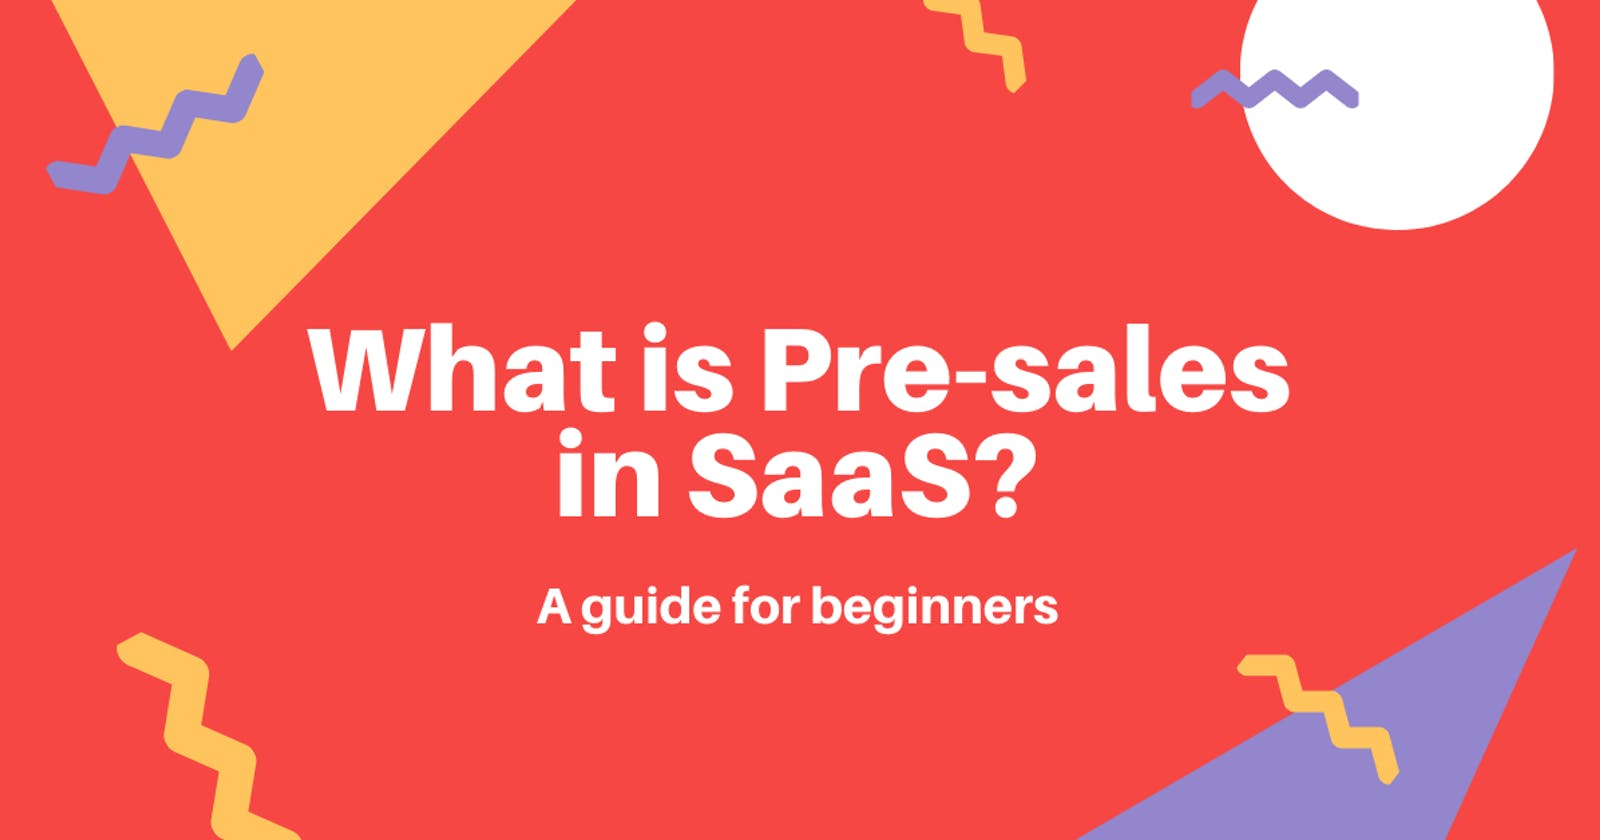 What is Pre-sales in SaaS? (A guide for beginners)